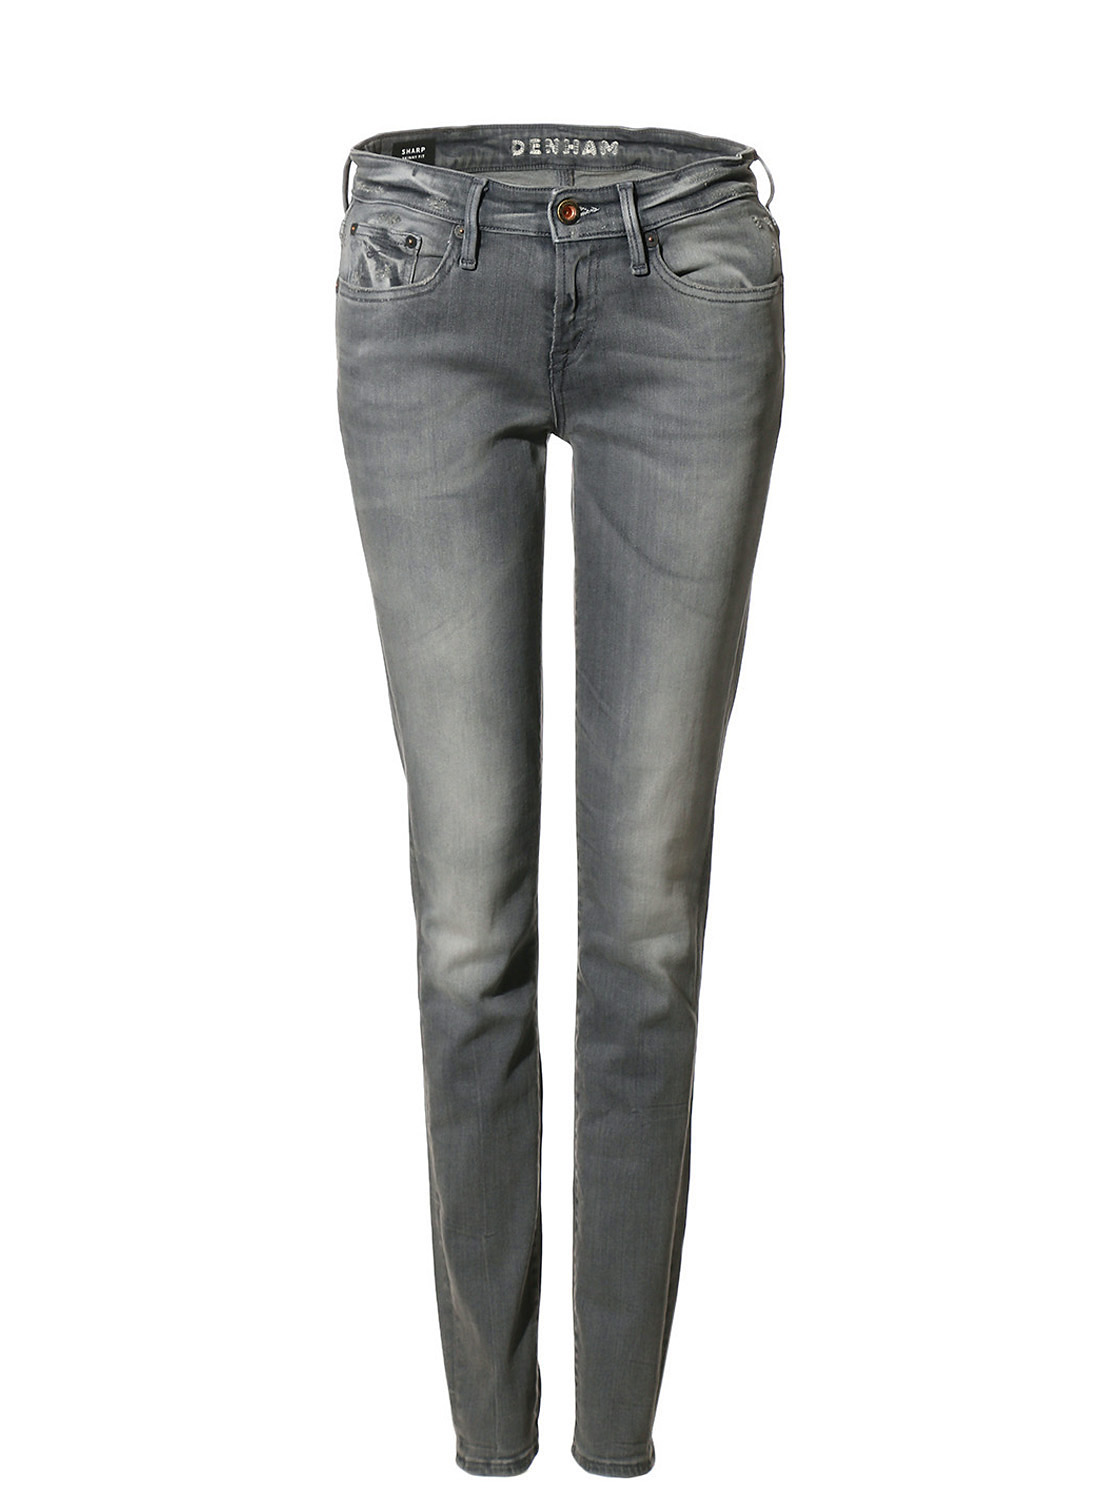 【CANDIANI DENIM】 SHARP 3YG